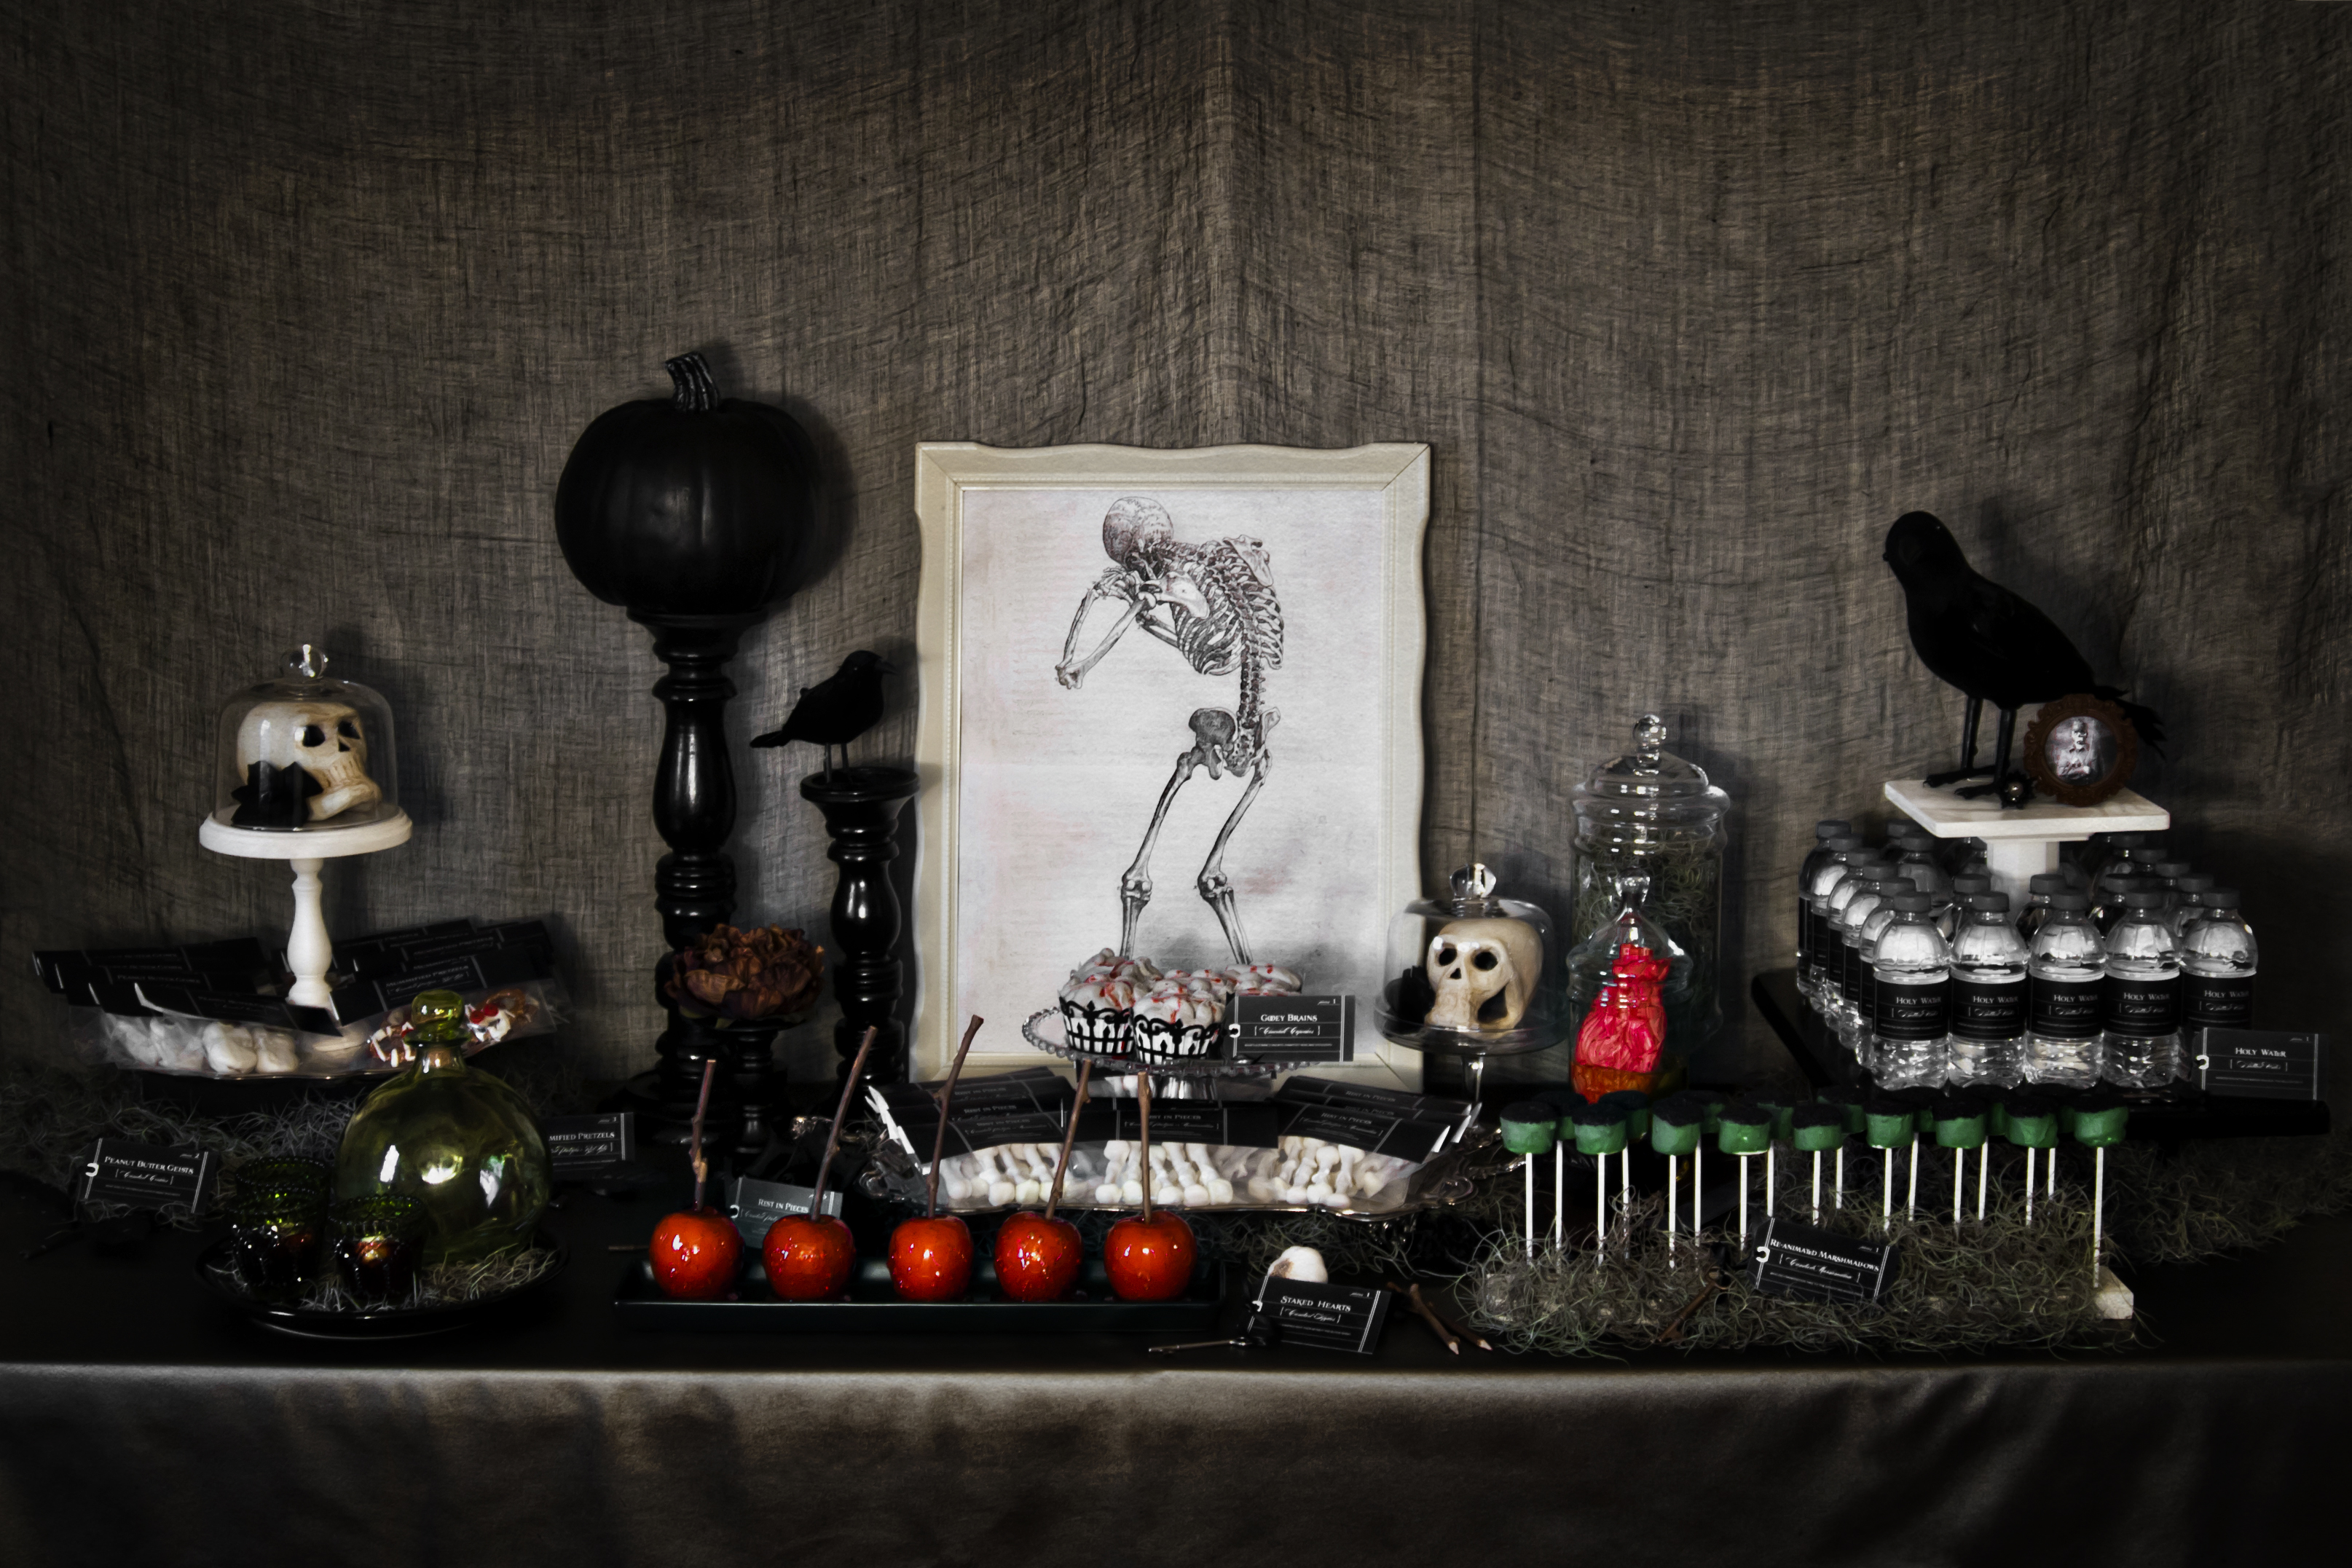 spooky halloween party ideas handmade decor the flair exchangethe flair exchange. Black Bedroom Furniture Sets. Home Design Ideas